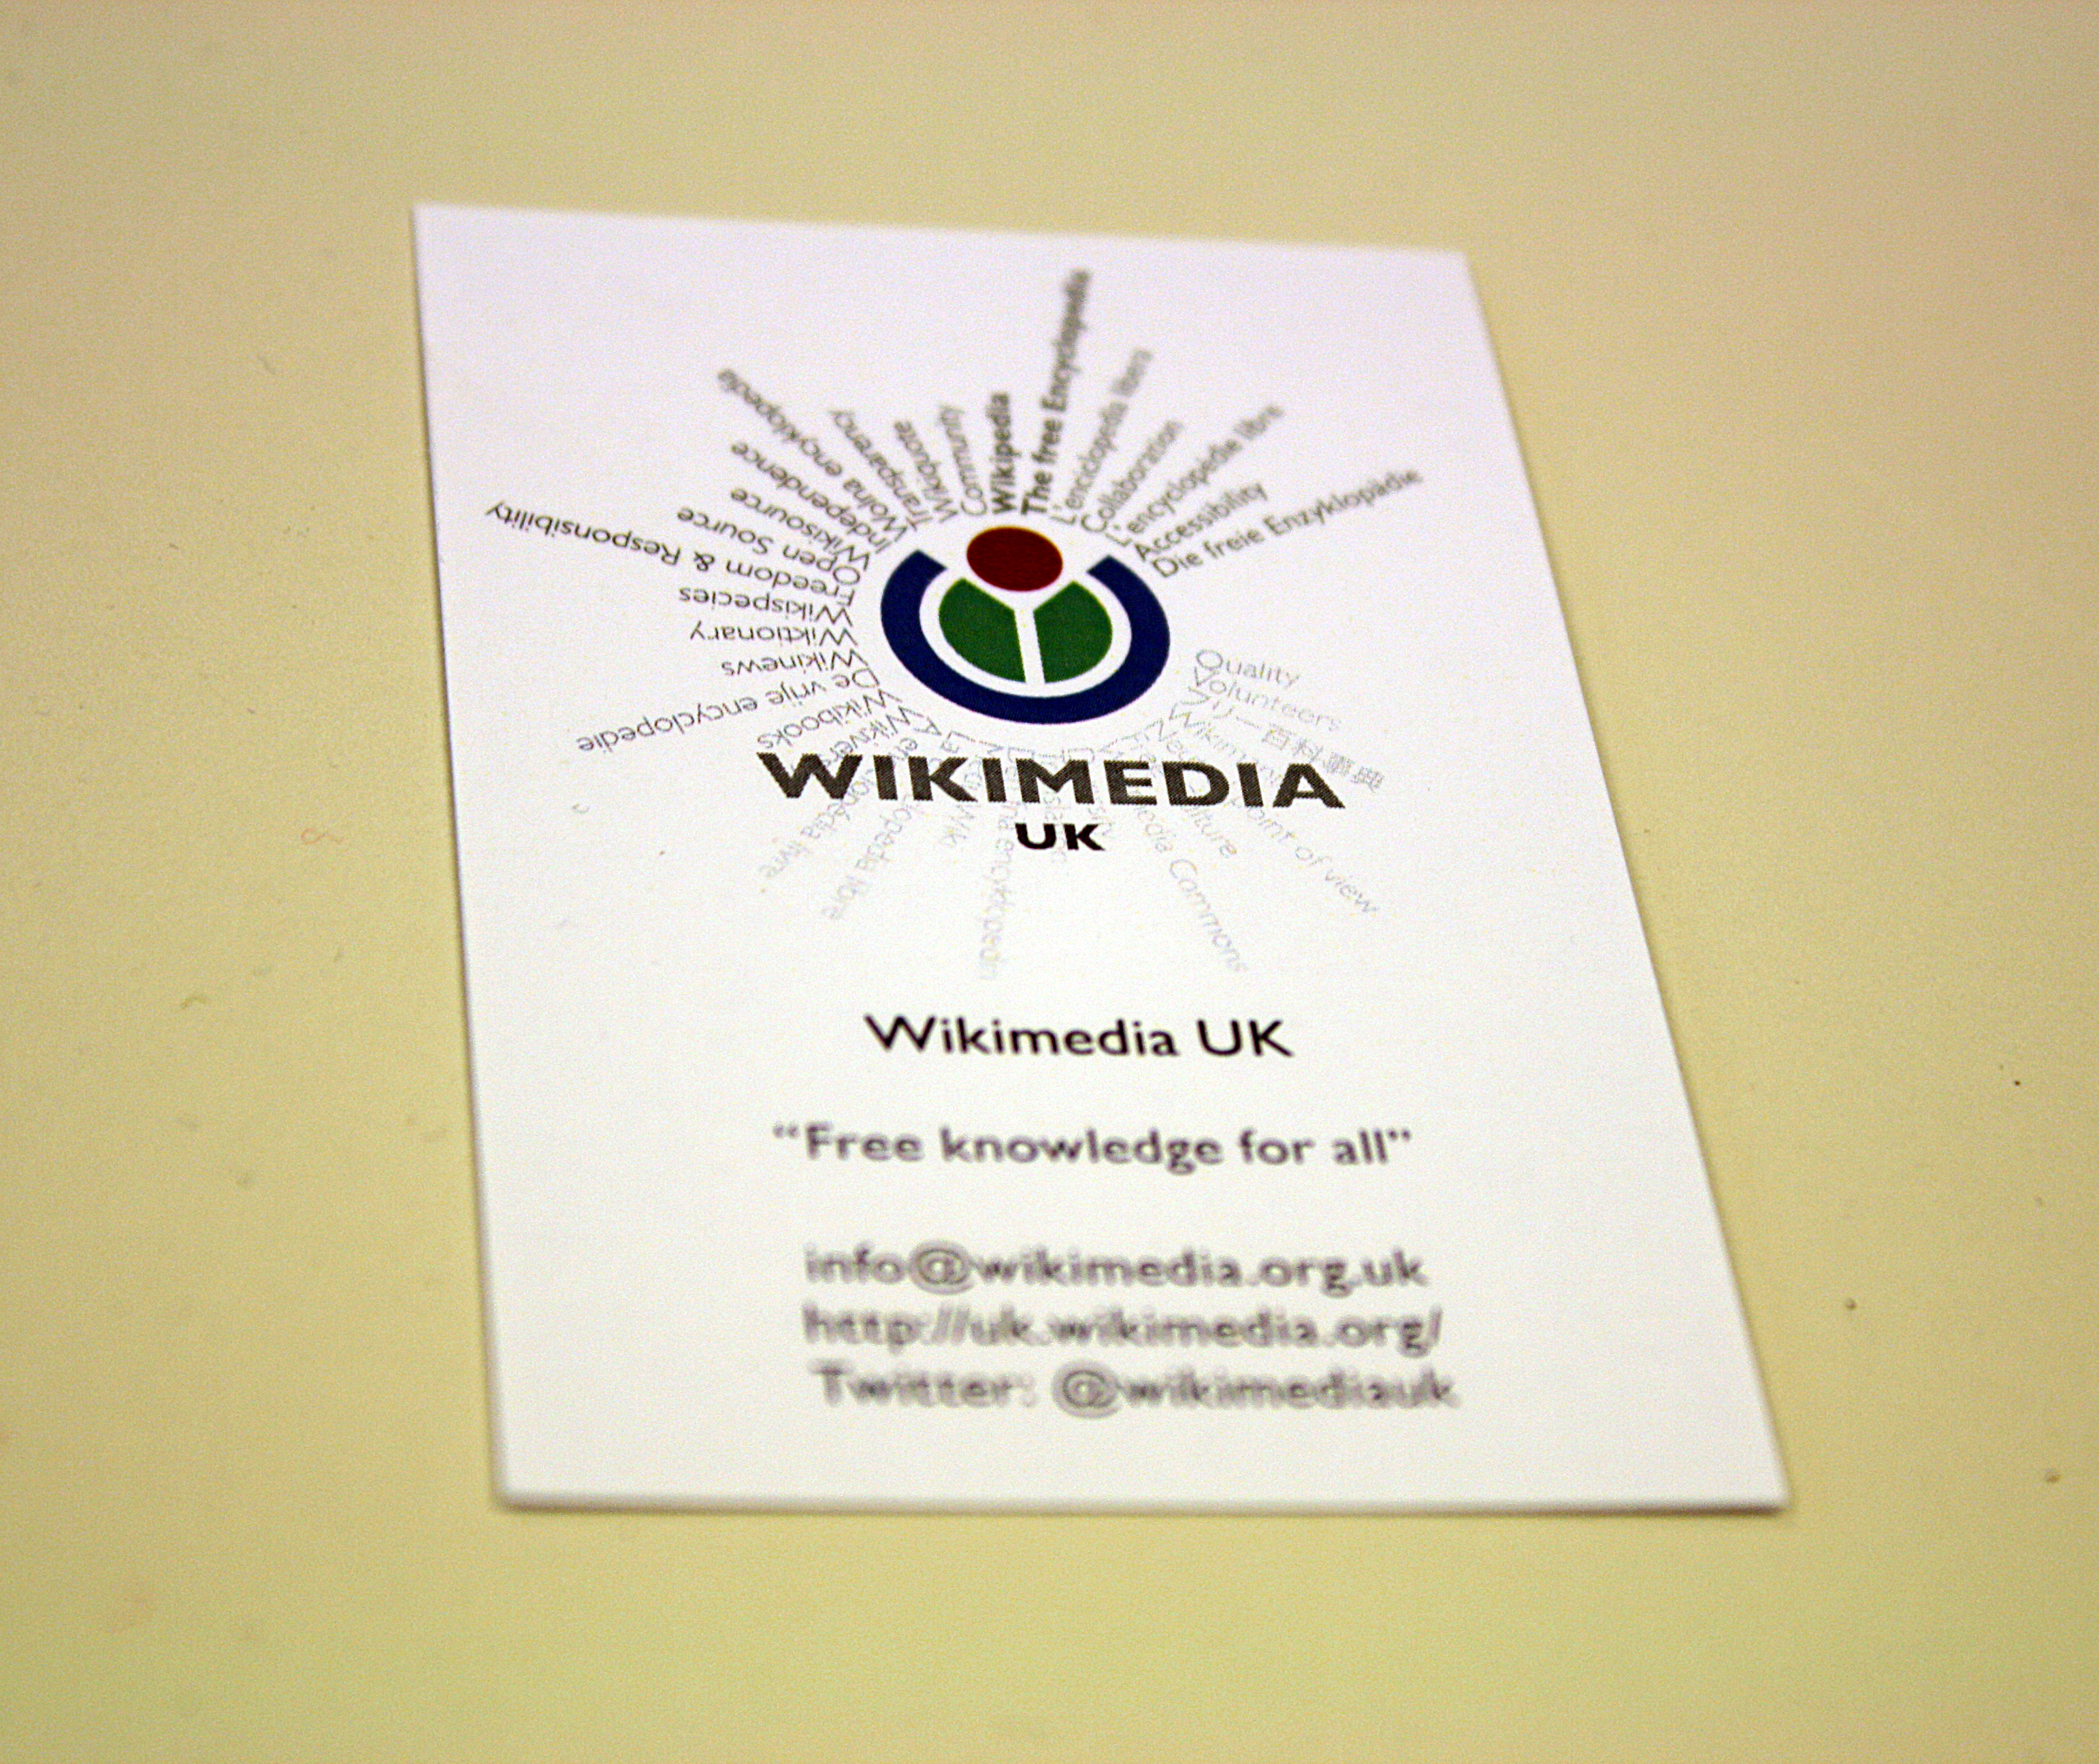 Filewikimedia uk business cards 2g wikimedia commons filewikimedia uk business cards 2g fbccfo Choice Image